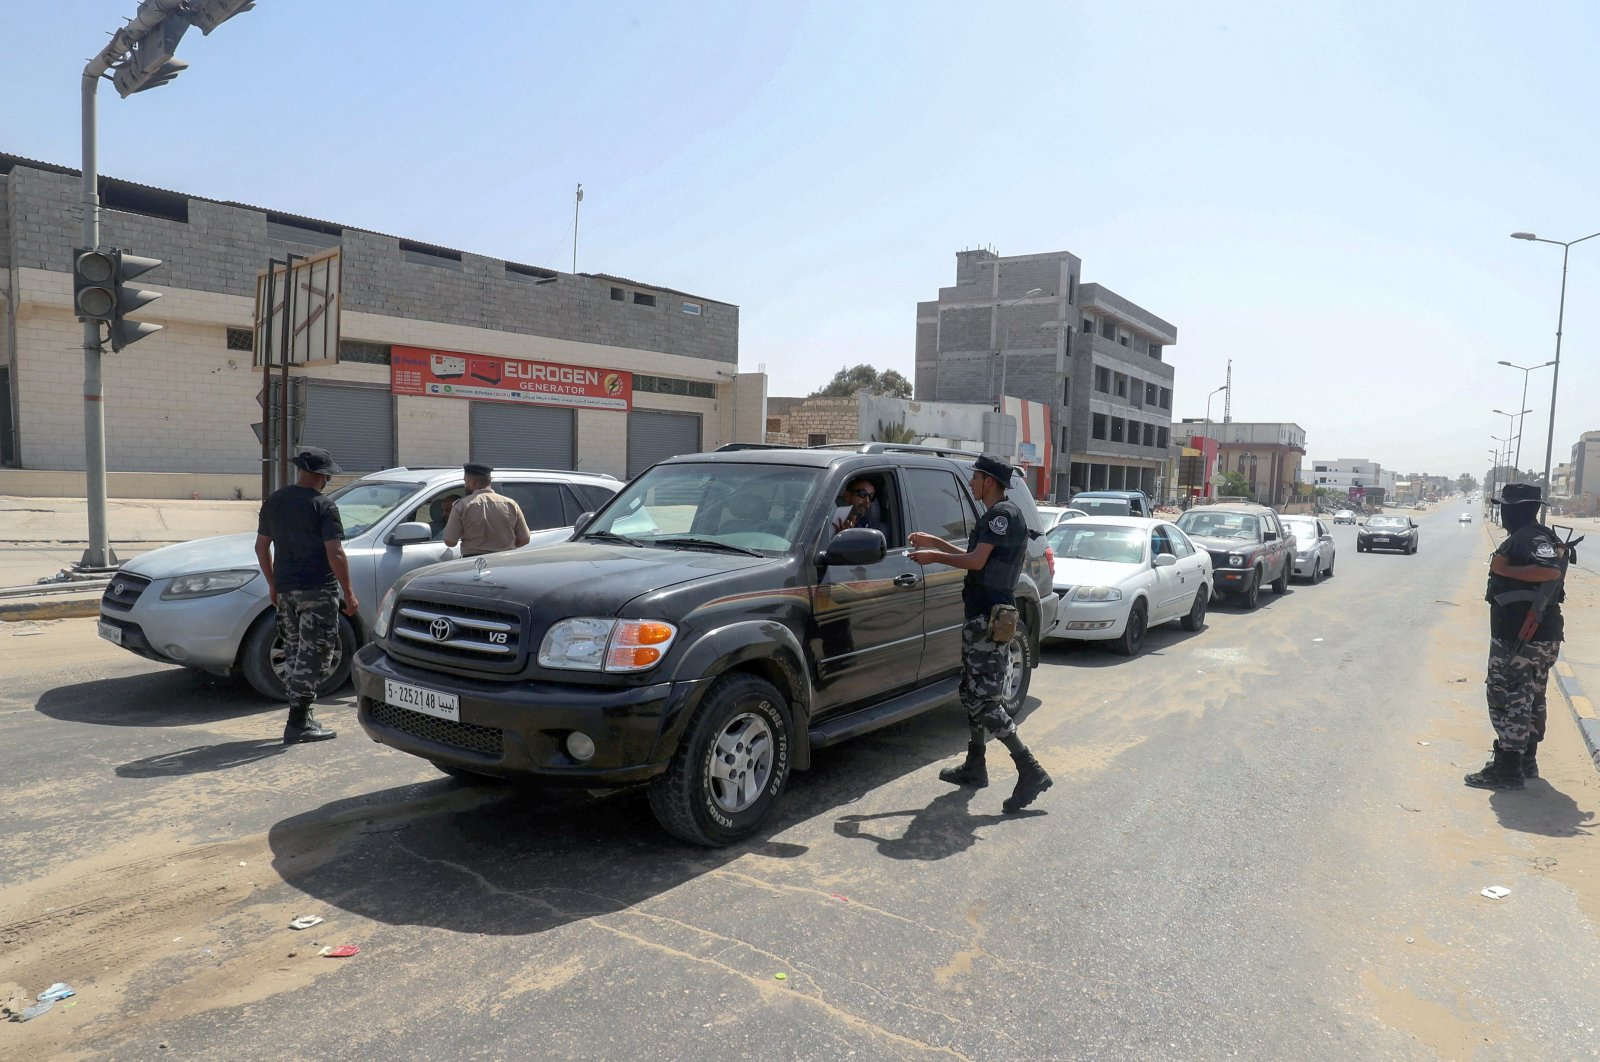 Libyan security officers run a checkpoint to verify the implementation of a total curfew the authorities announced a day earlier to mitigate the spread of the COVID-19 pandemic, in the capital Tripoli, Libya, Aug. 7, 2021. (AFP Photo)